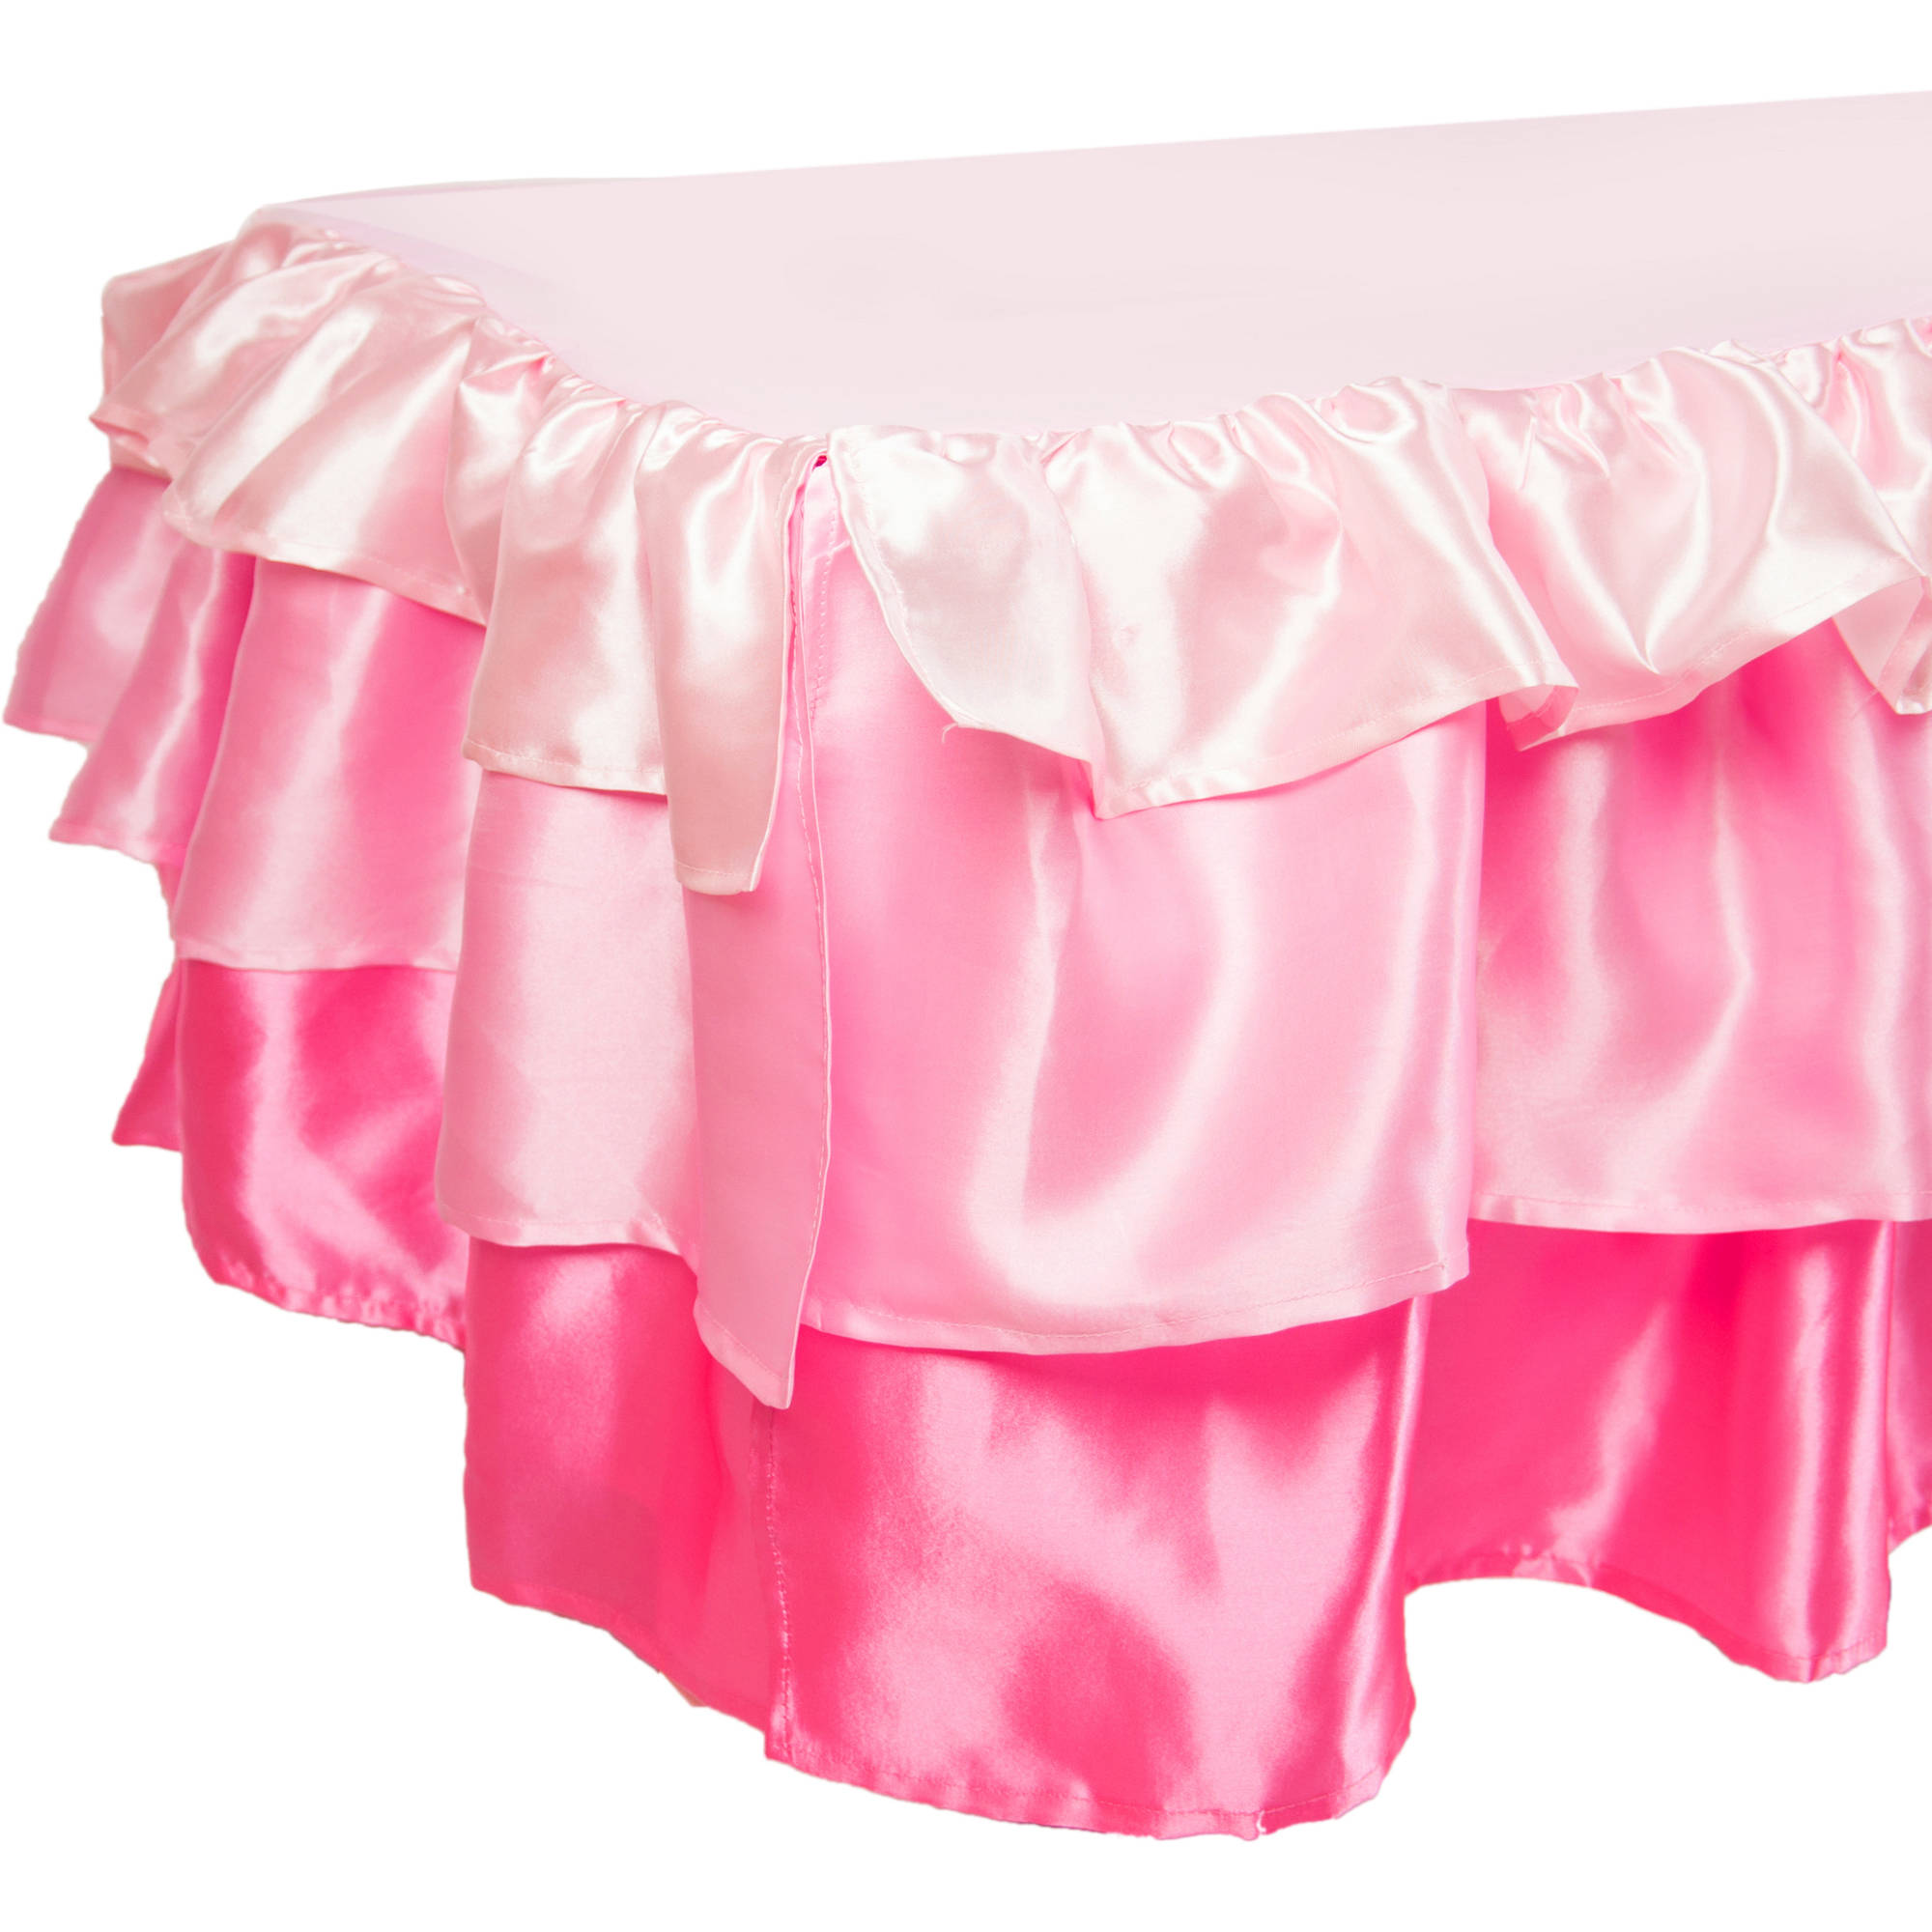 Tadpoles Pink Ruffled Satin Bed Skirt, Twin